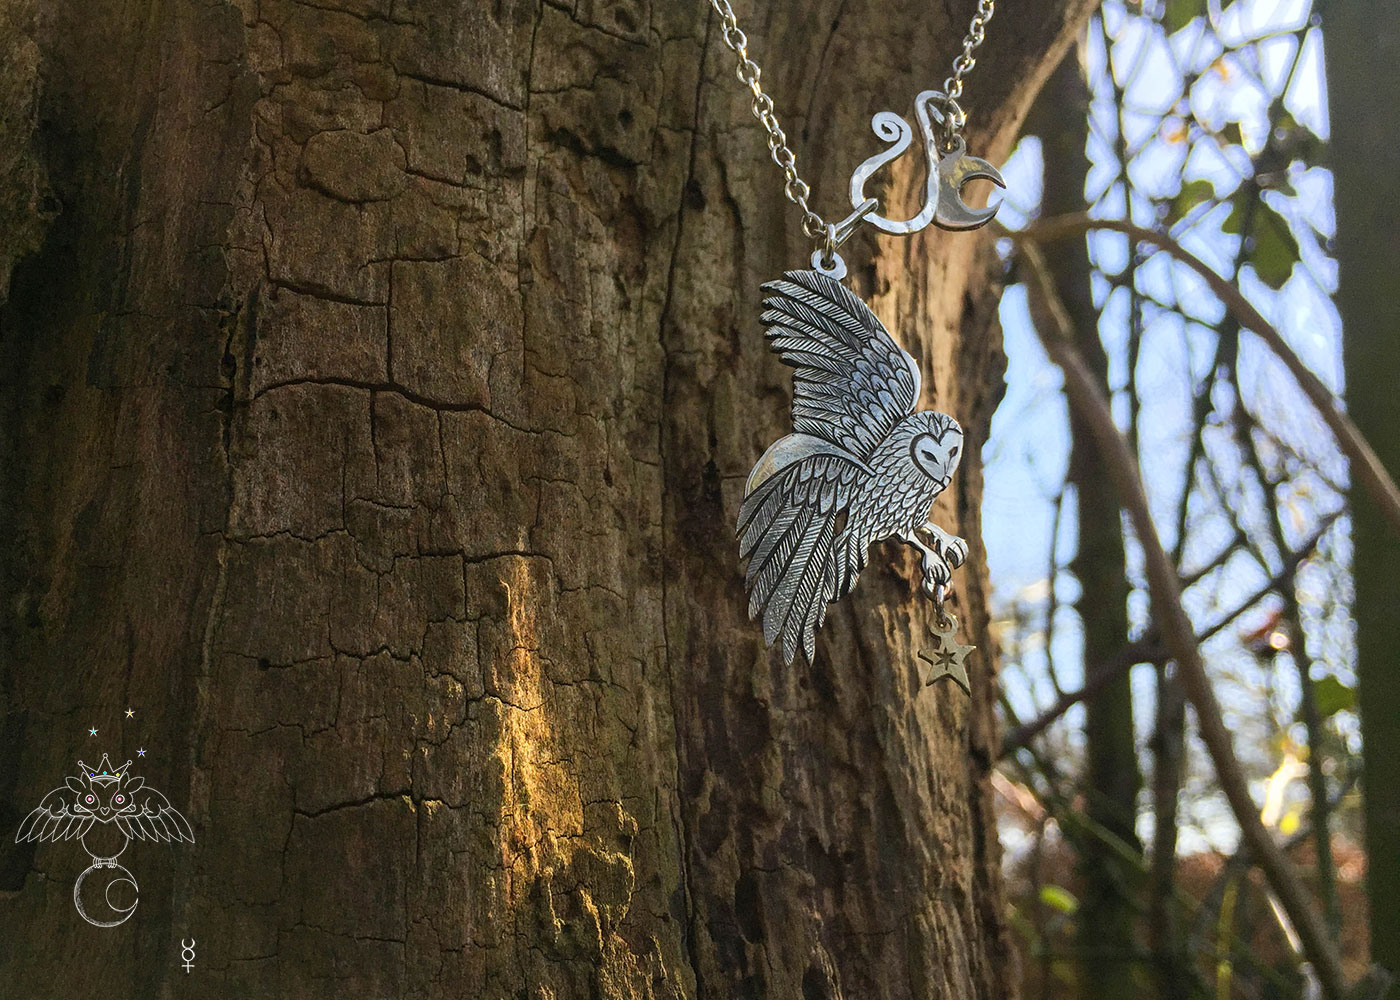 Owl necklace handcrafted and recycled sterling silver coin owl necklace made in Cambridge